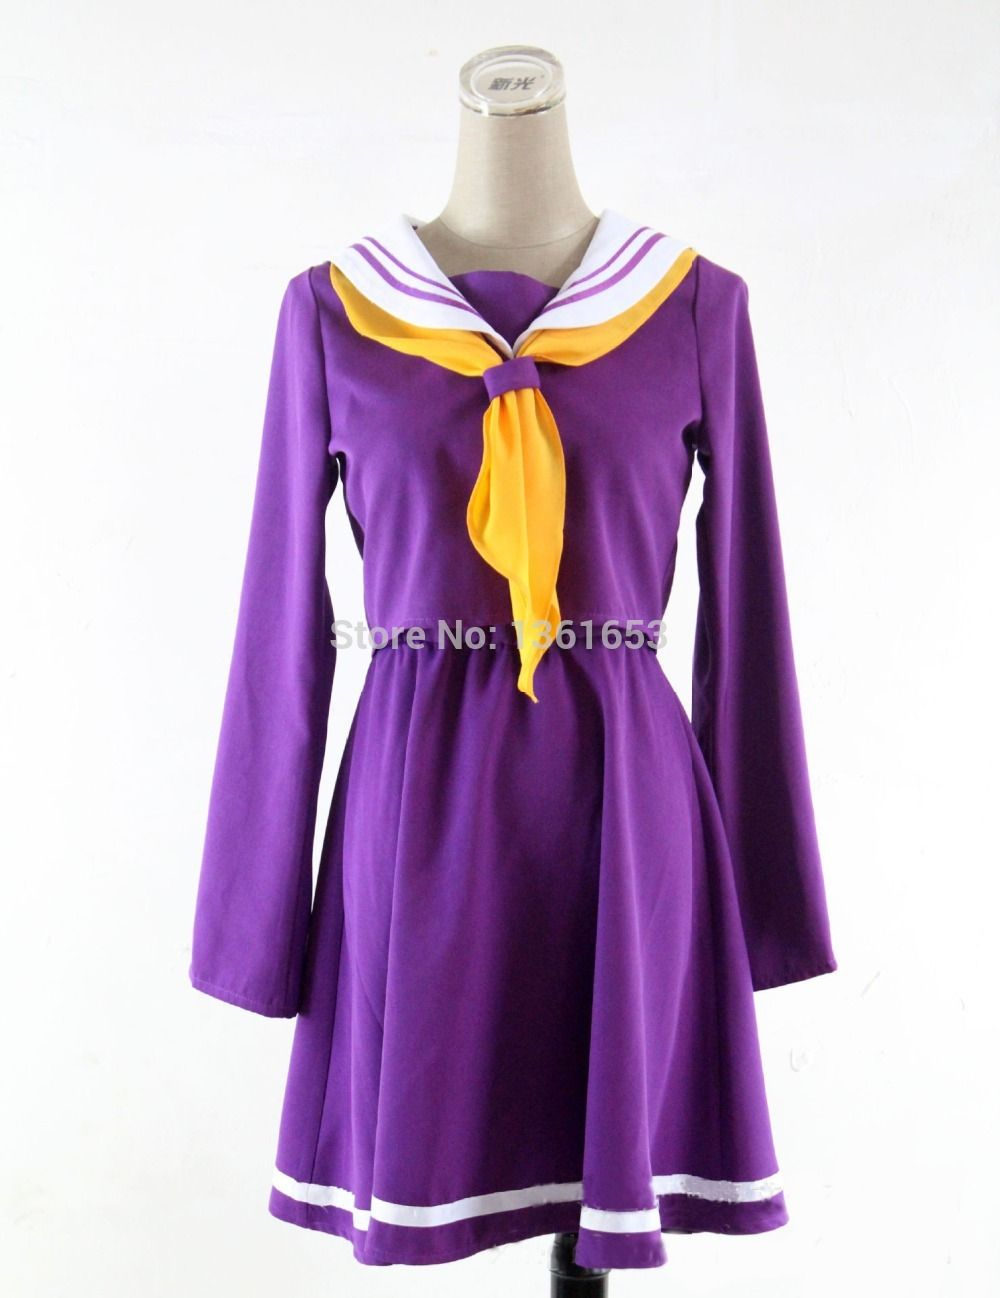 NO GAME NO LIFE Anime cosplay costume dress hallowean cosplay ...